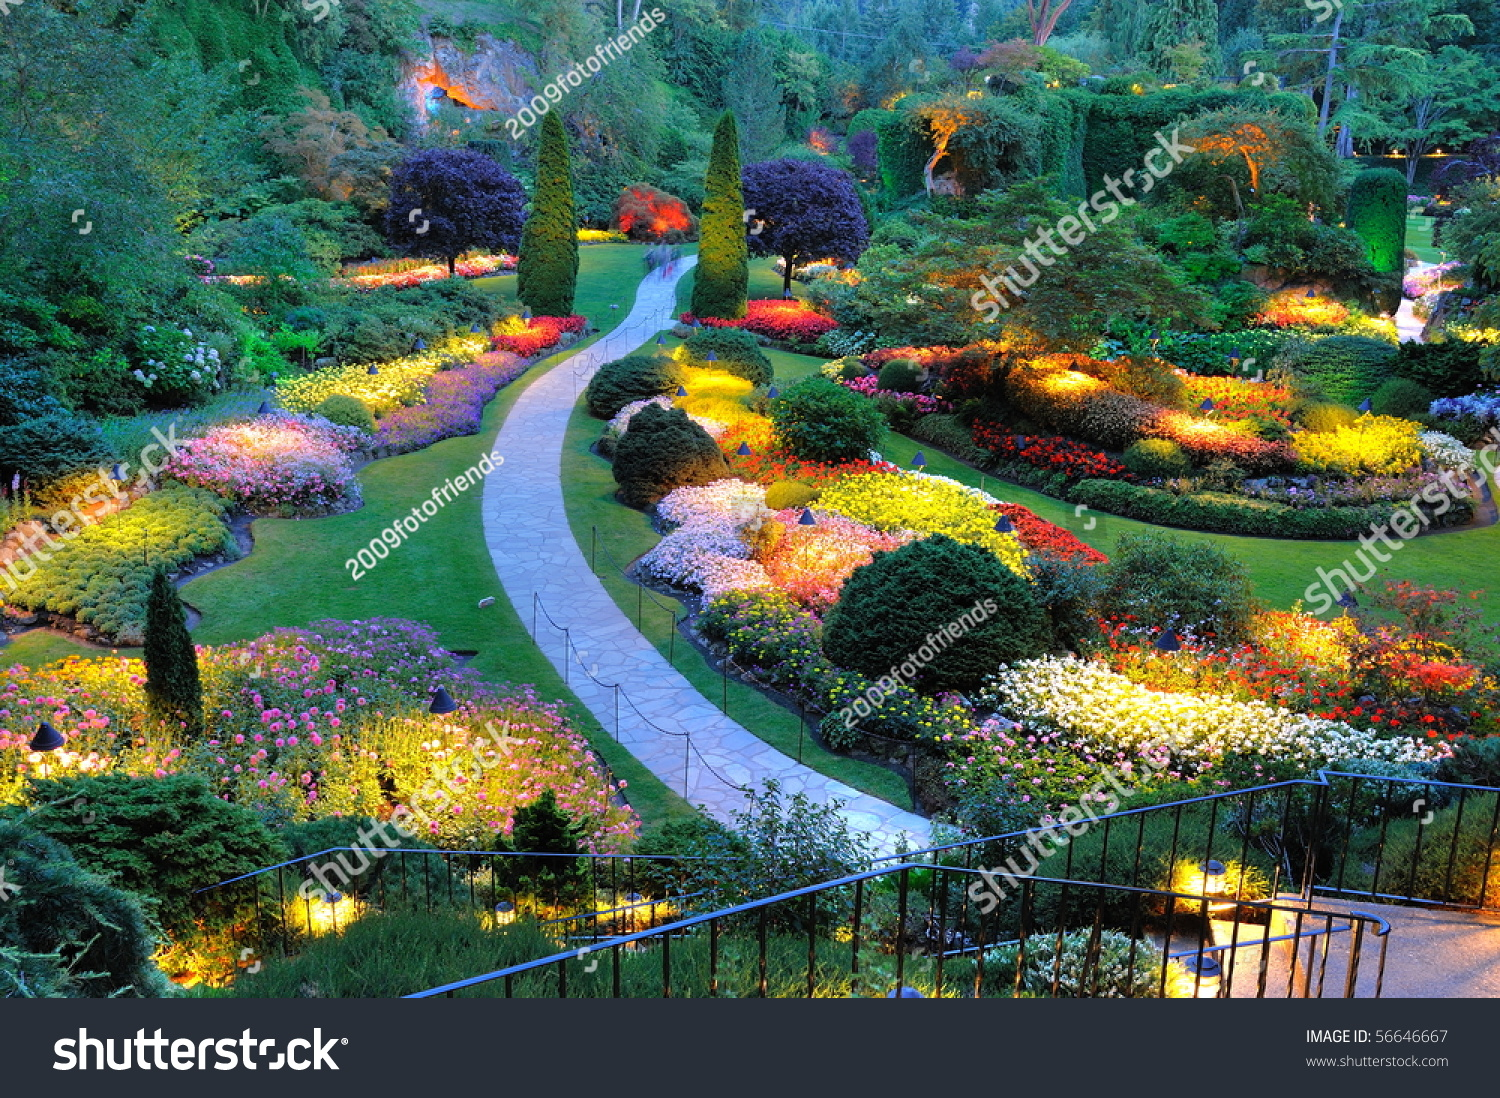 Summer garden lighting butchart gardens victoria stock for Gardening tools victoria bc